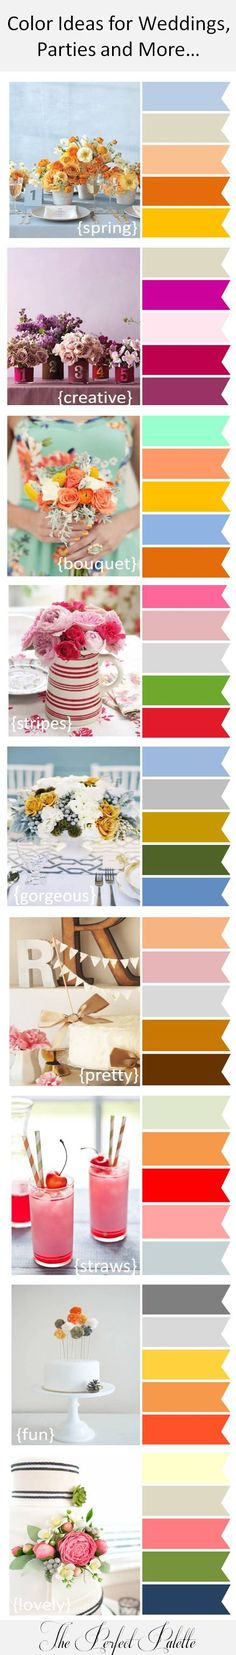 Color Ideas for Weddings | Wedding Color Ideas via @The Perfect Palette